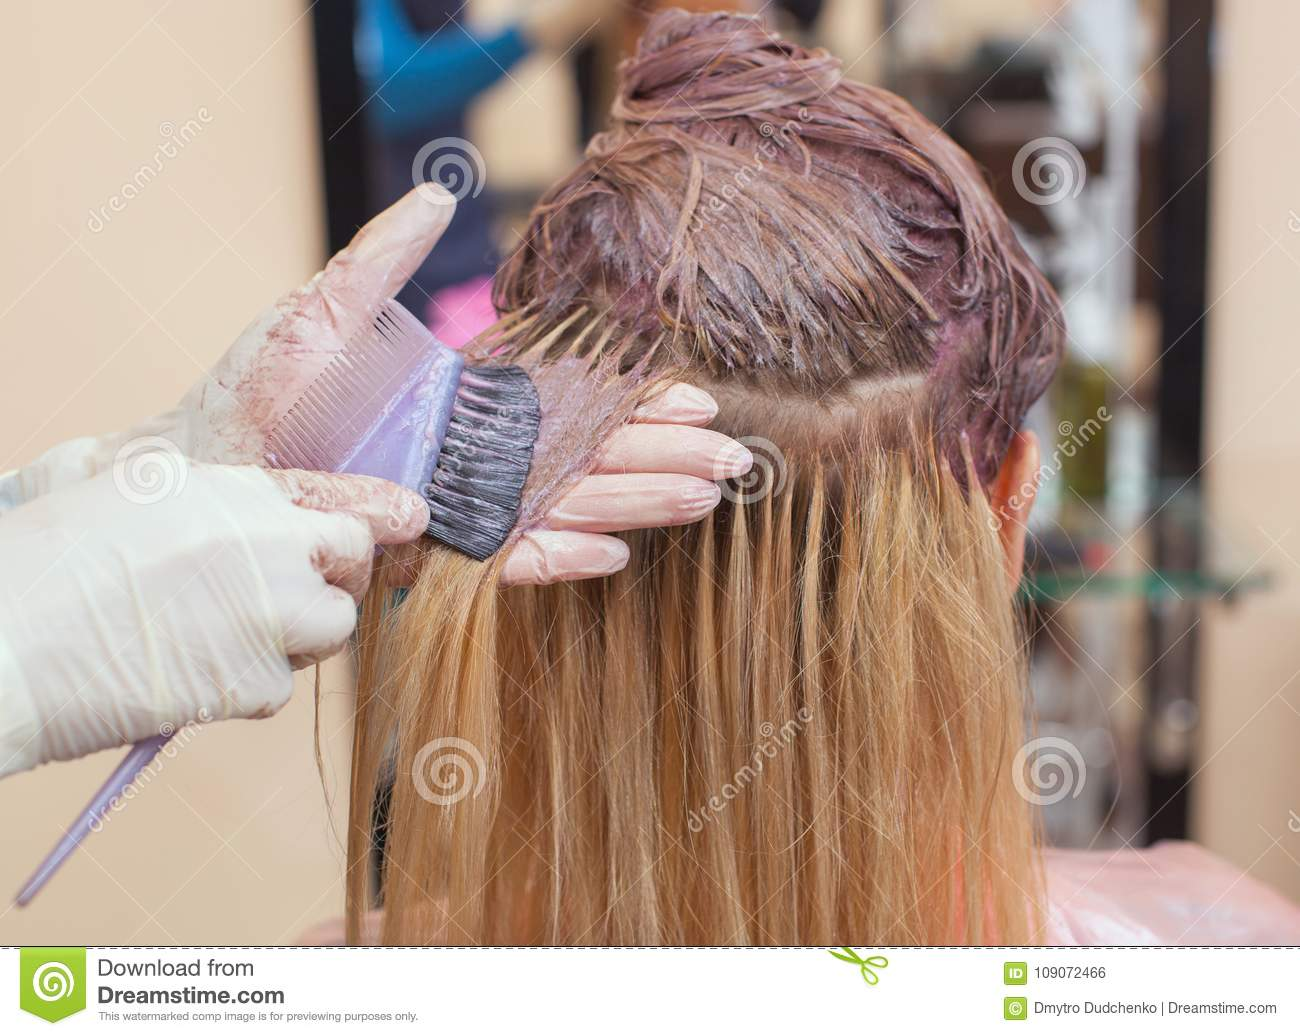 The hairdresser paints the woman`s hair in white, apply the paint to her hair